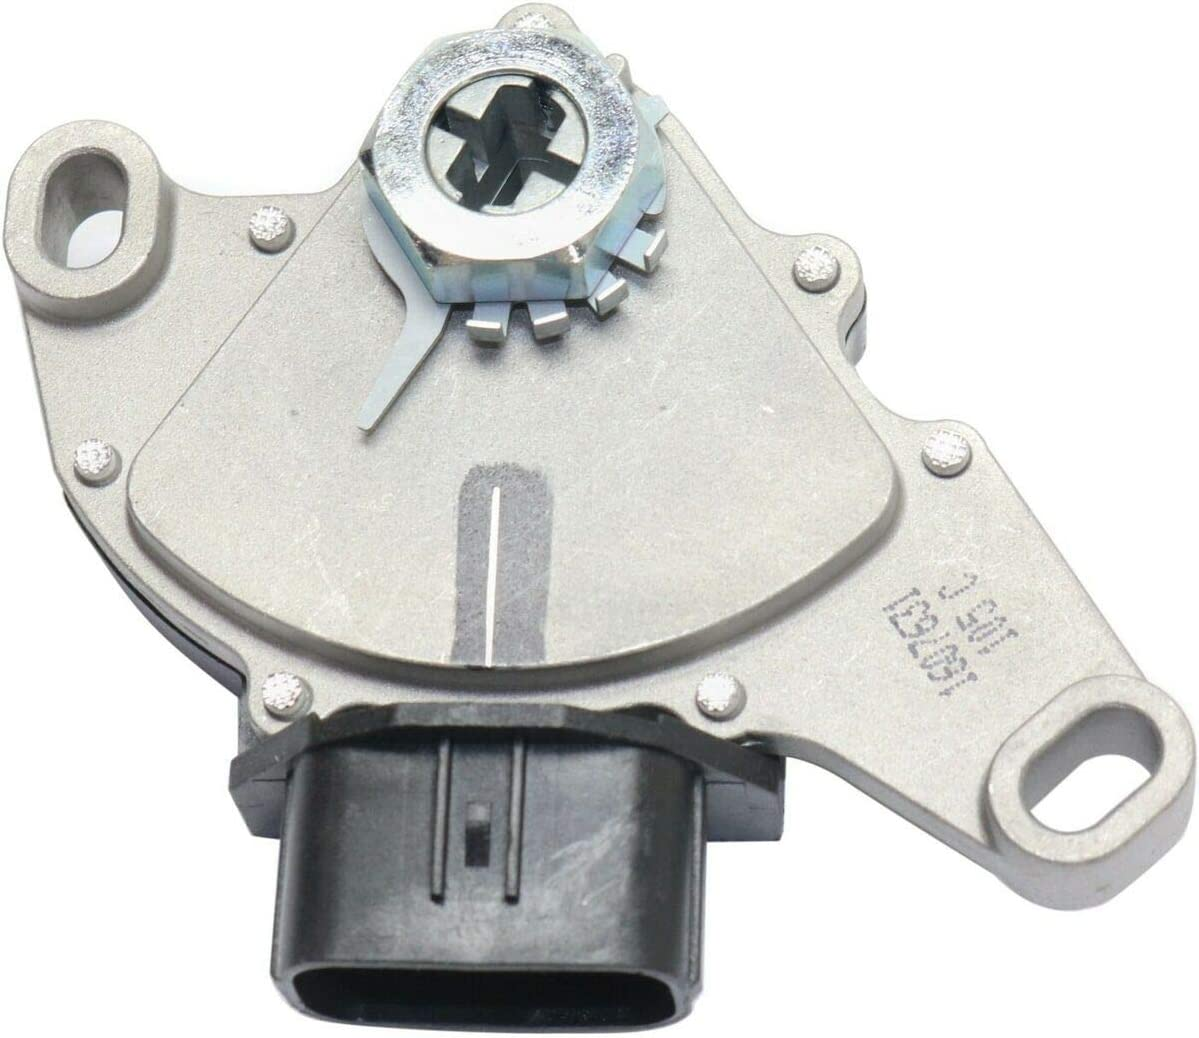 New Replacement for OE Neutral Safety Switch fits Toyota Camry Corolla Sienna RAV4 Celica Highlander